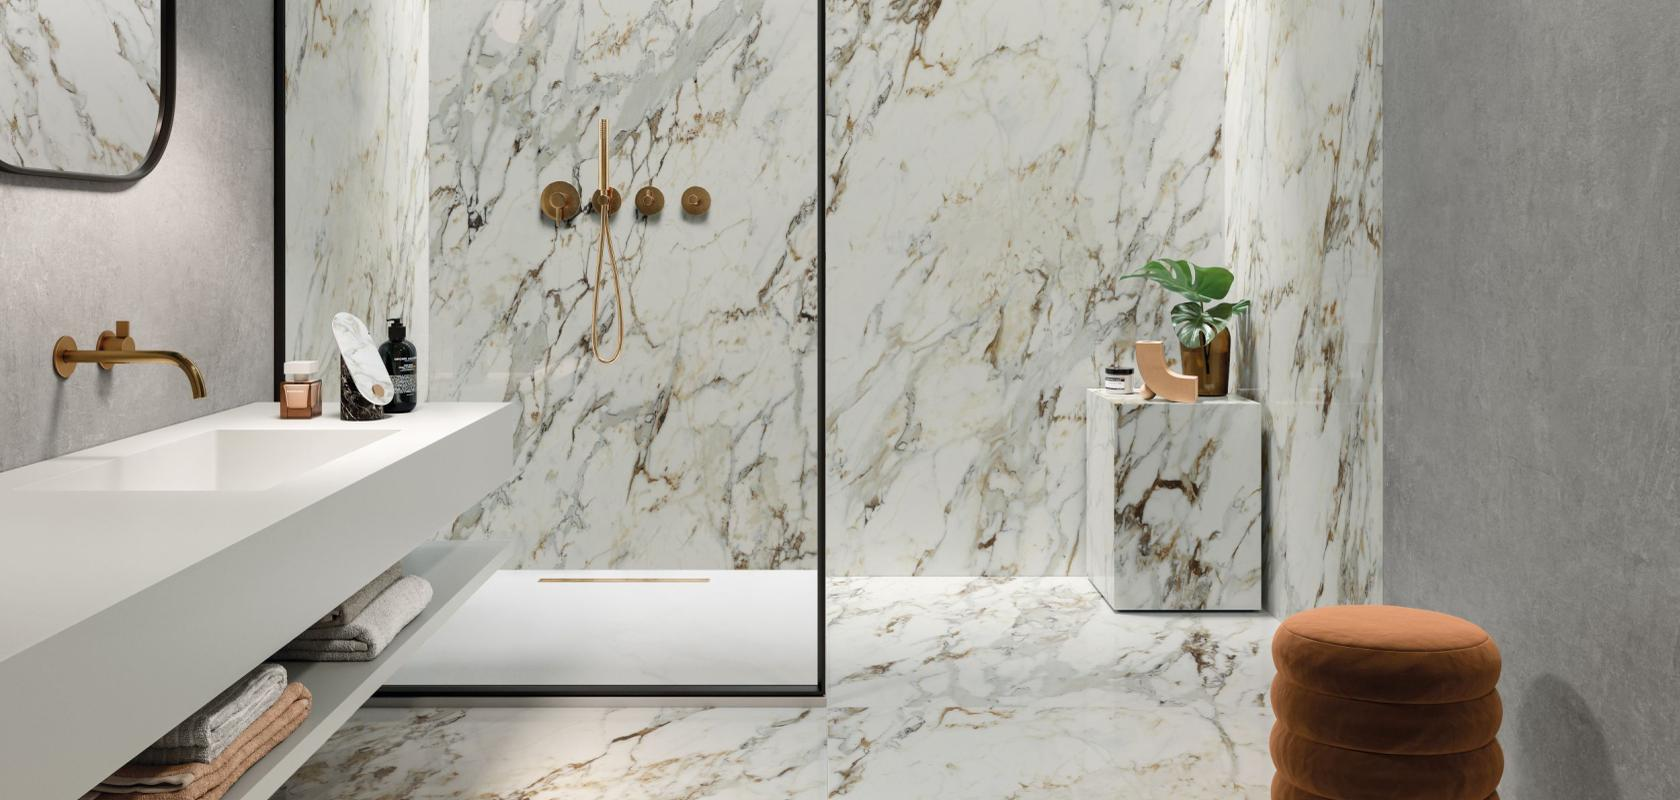 Breccia Marble Tiles on Wall Coverings